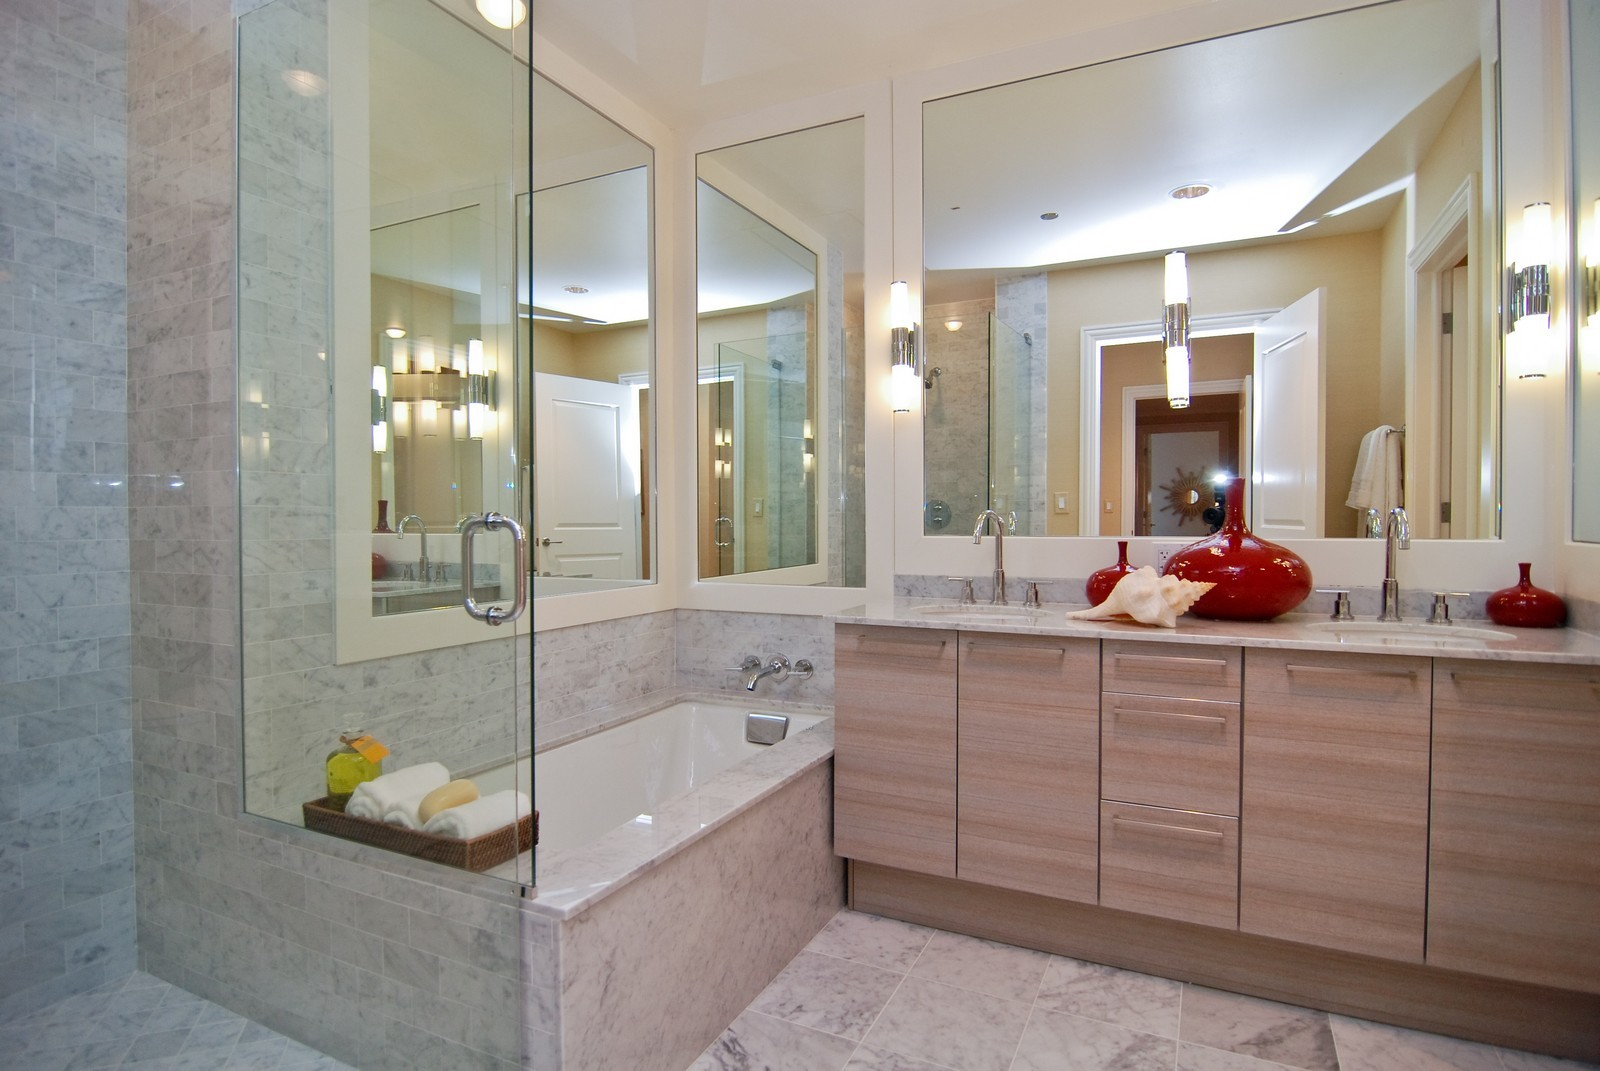 Real Estate Photography - 10 E Delaware Ave, Chicago, IL, 60610 - Master Bathroom